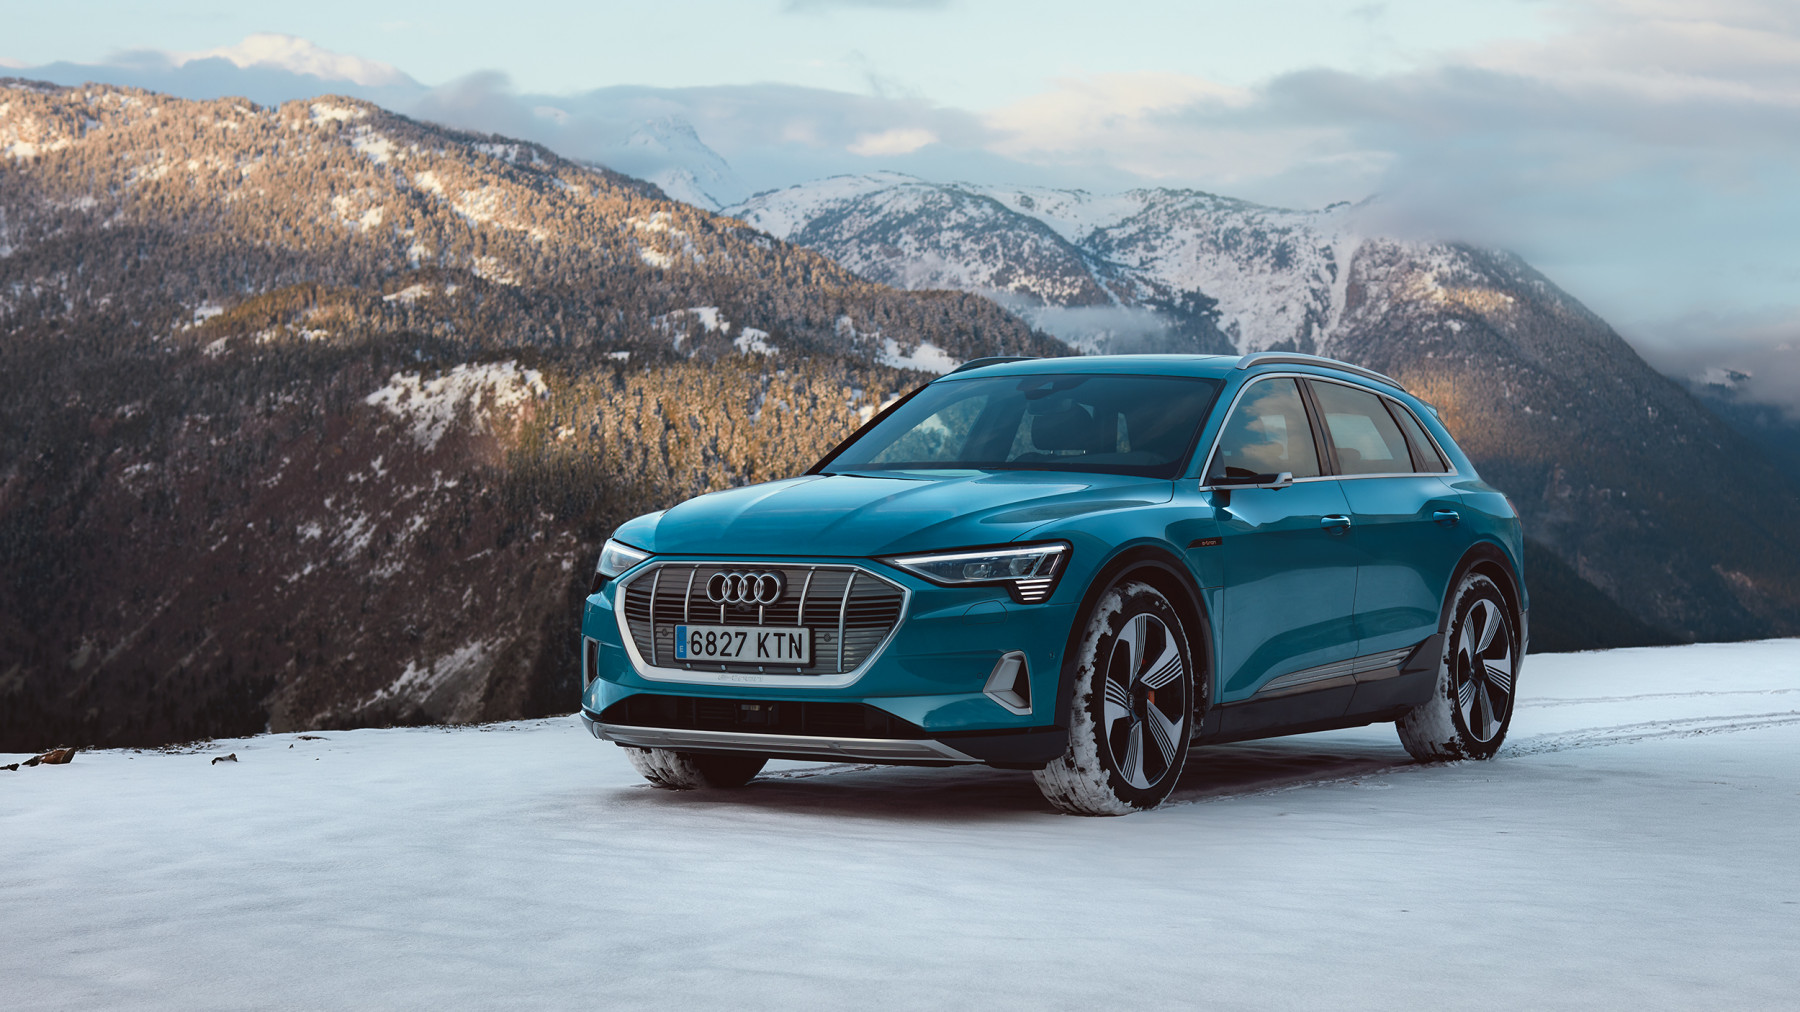 Audi E-Tron winter Barcelona to Baqueira Beret spread 7